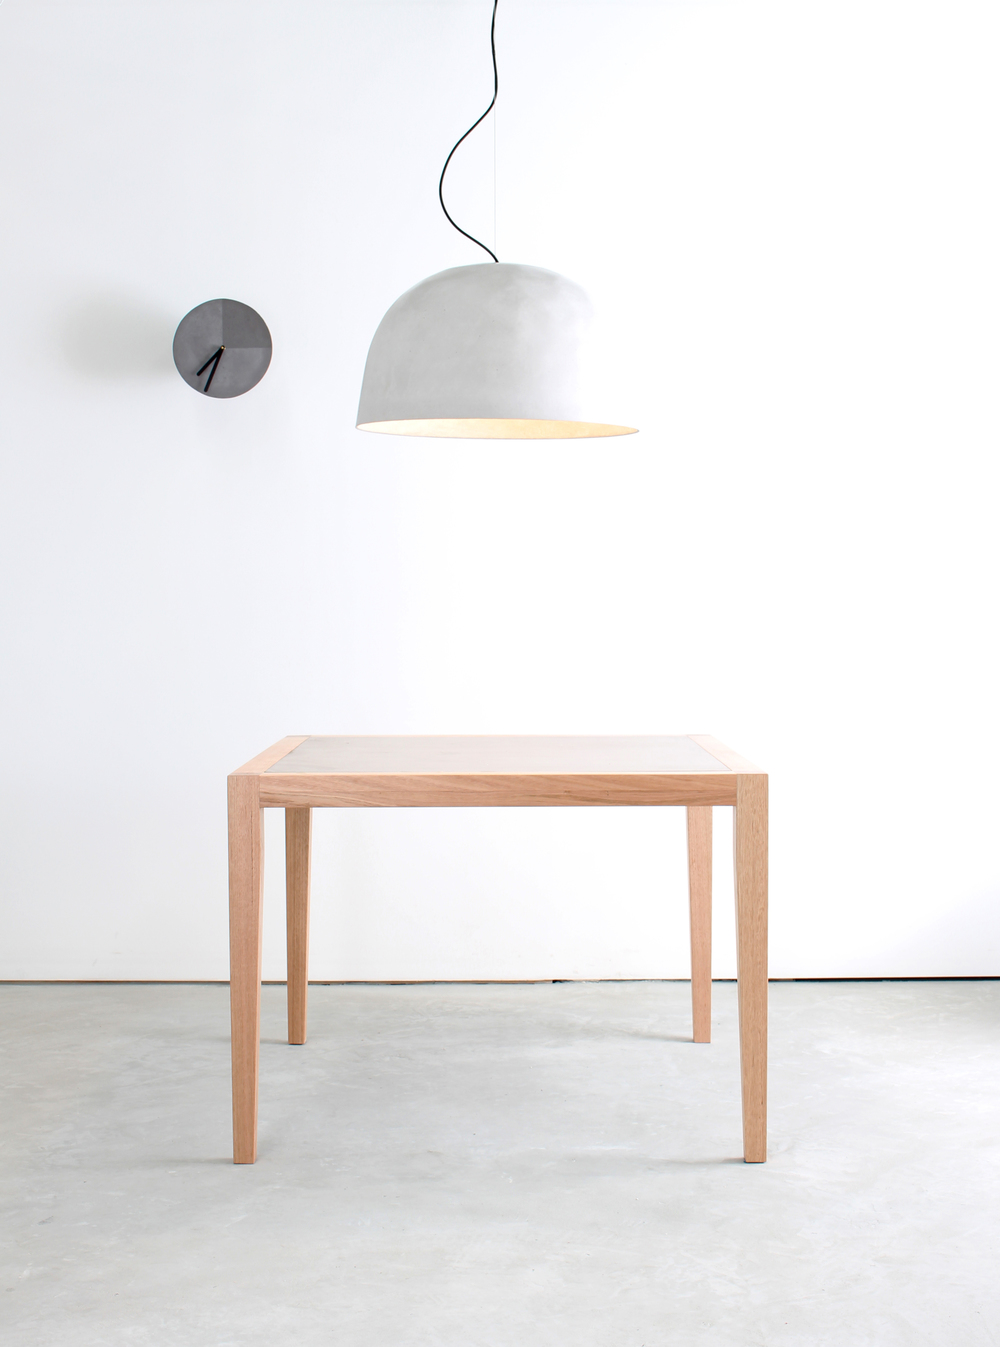 Snowi Concrete Pendant Light with Neli Dining Table